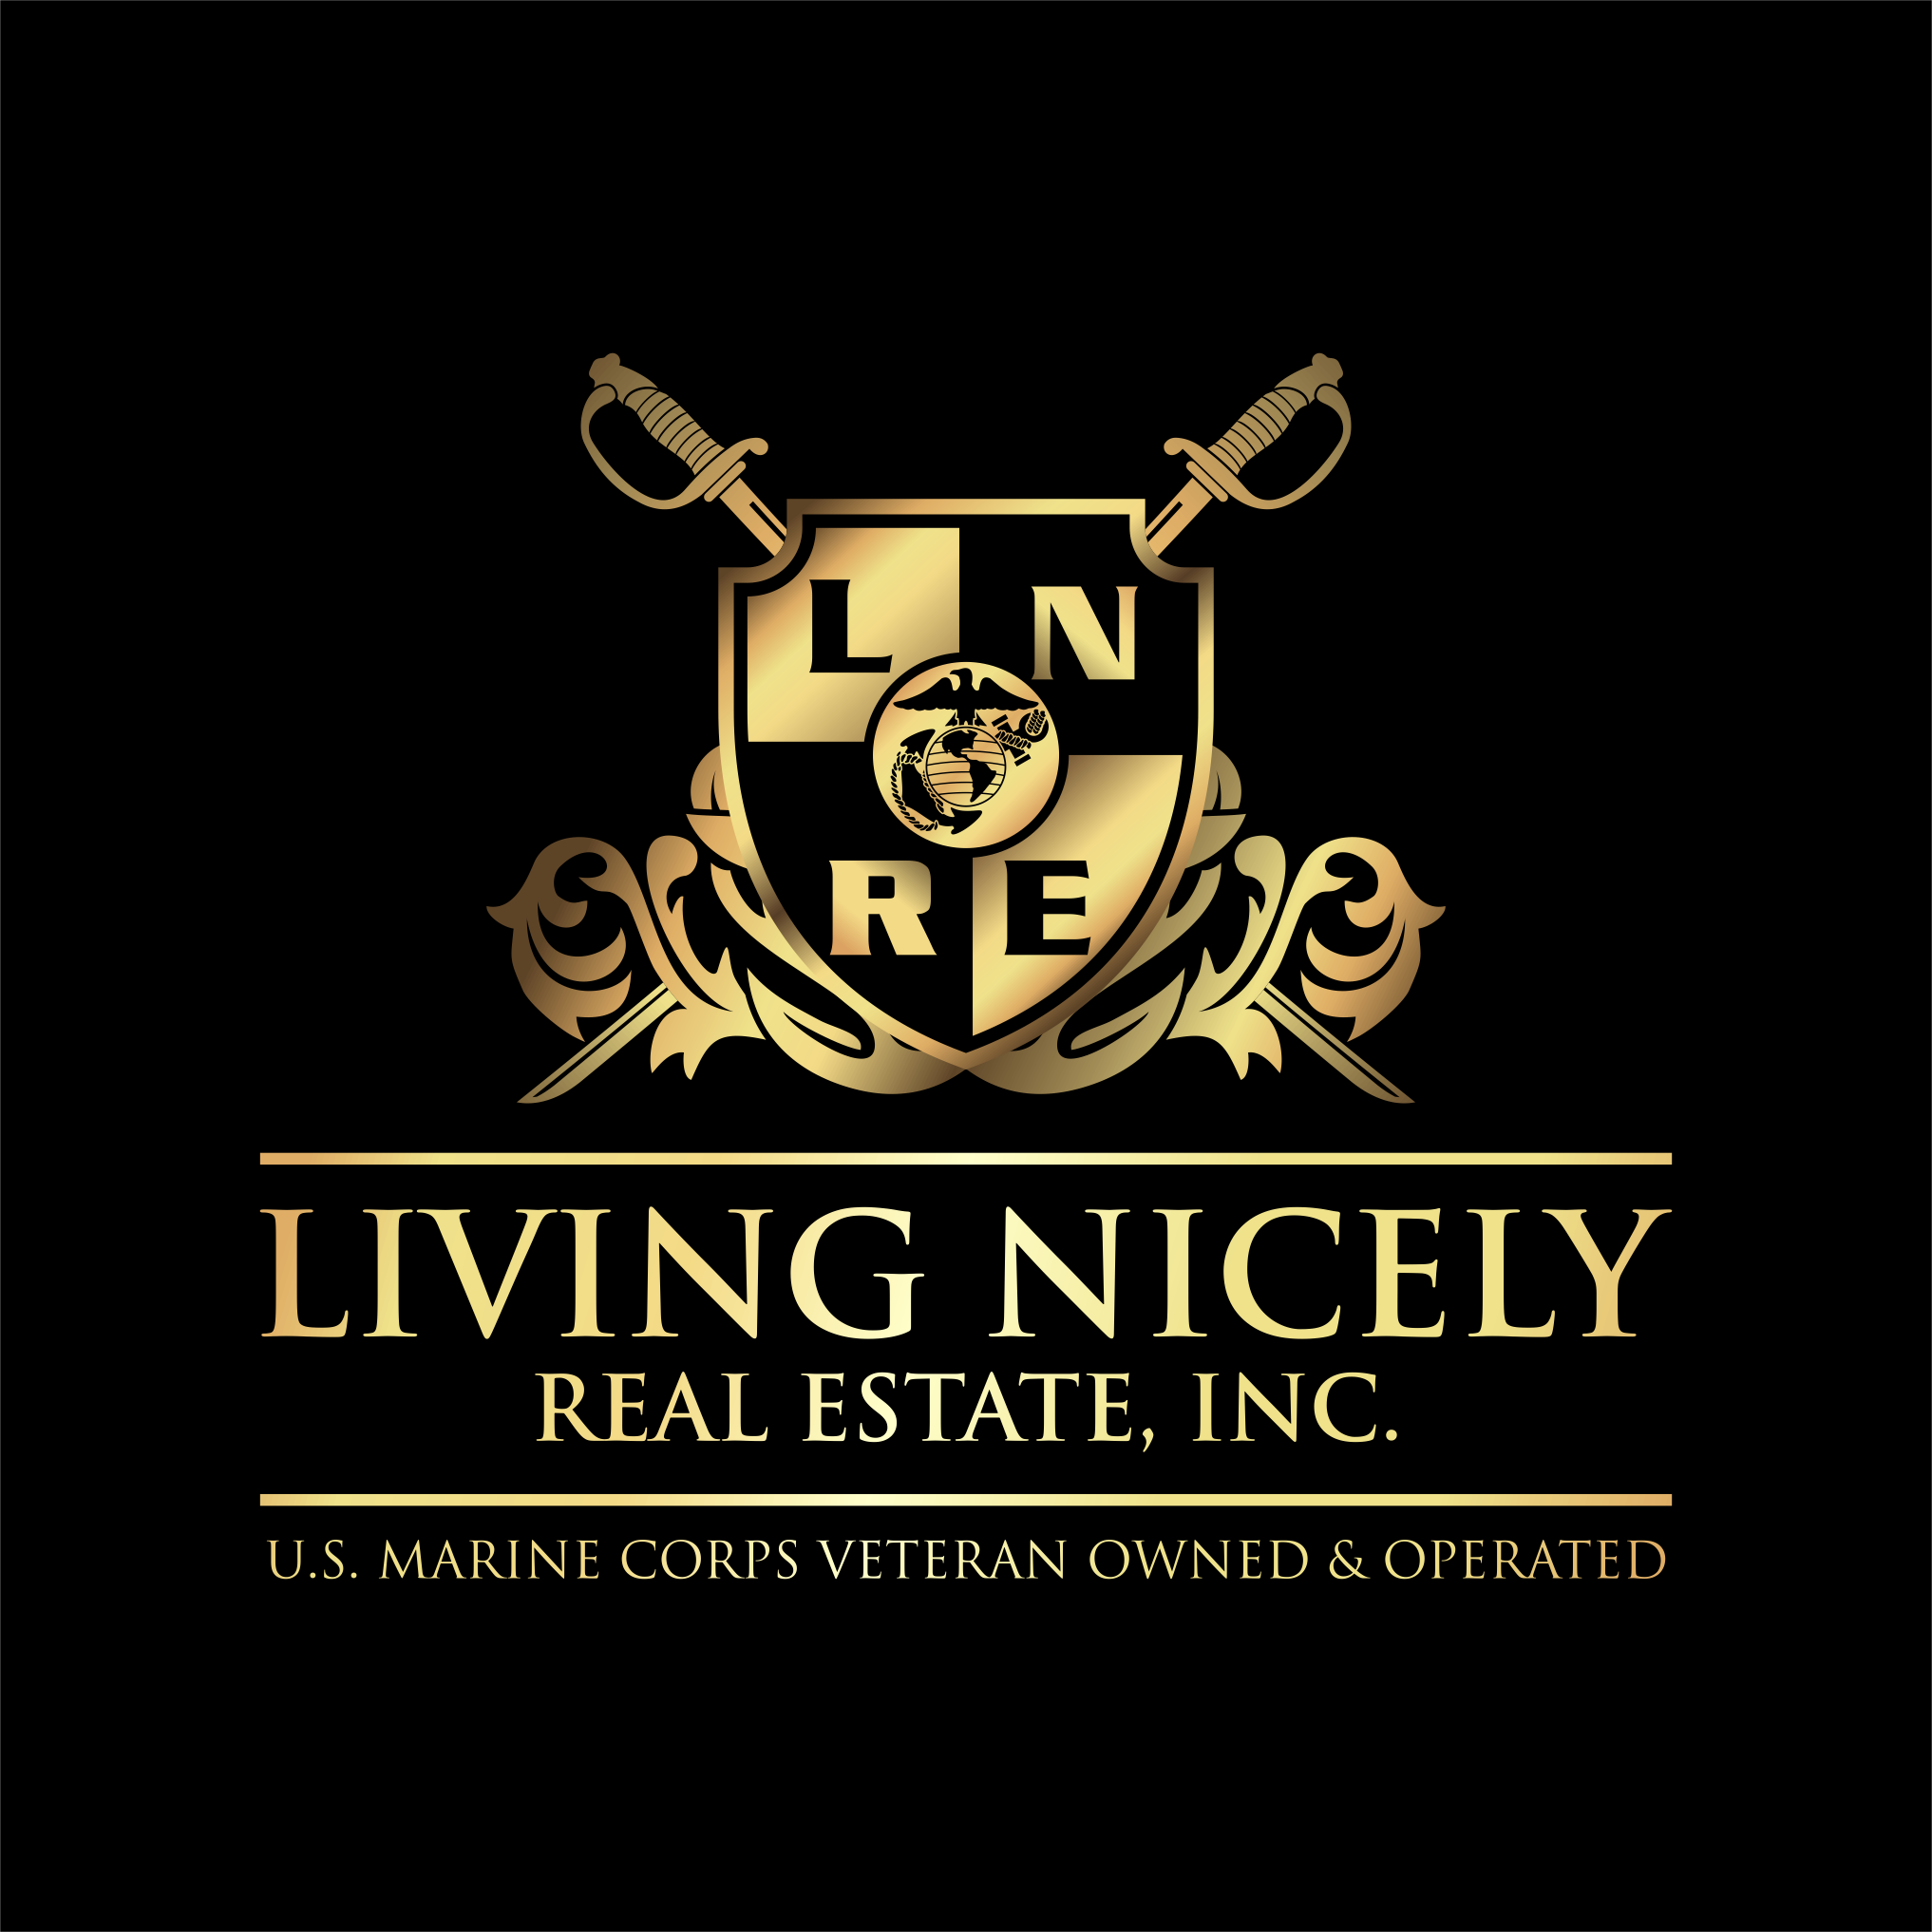 Gold Crest & Cross Swords with EGA for Living Nicely Real Estate, Inc.